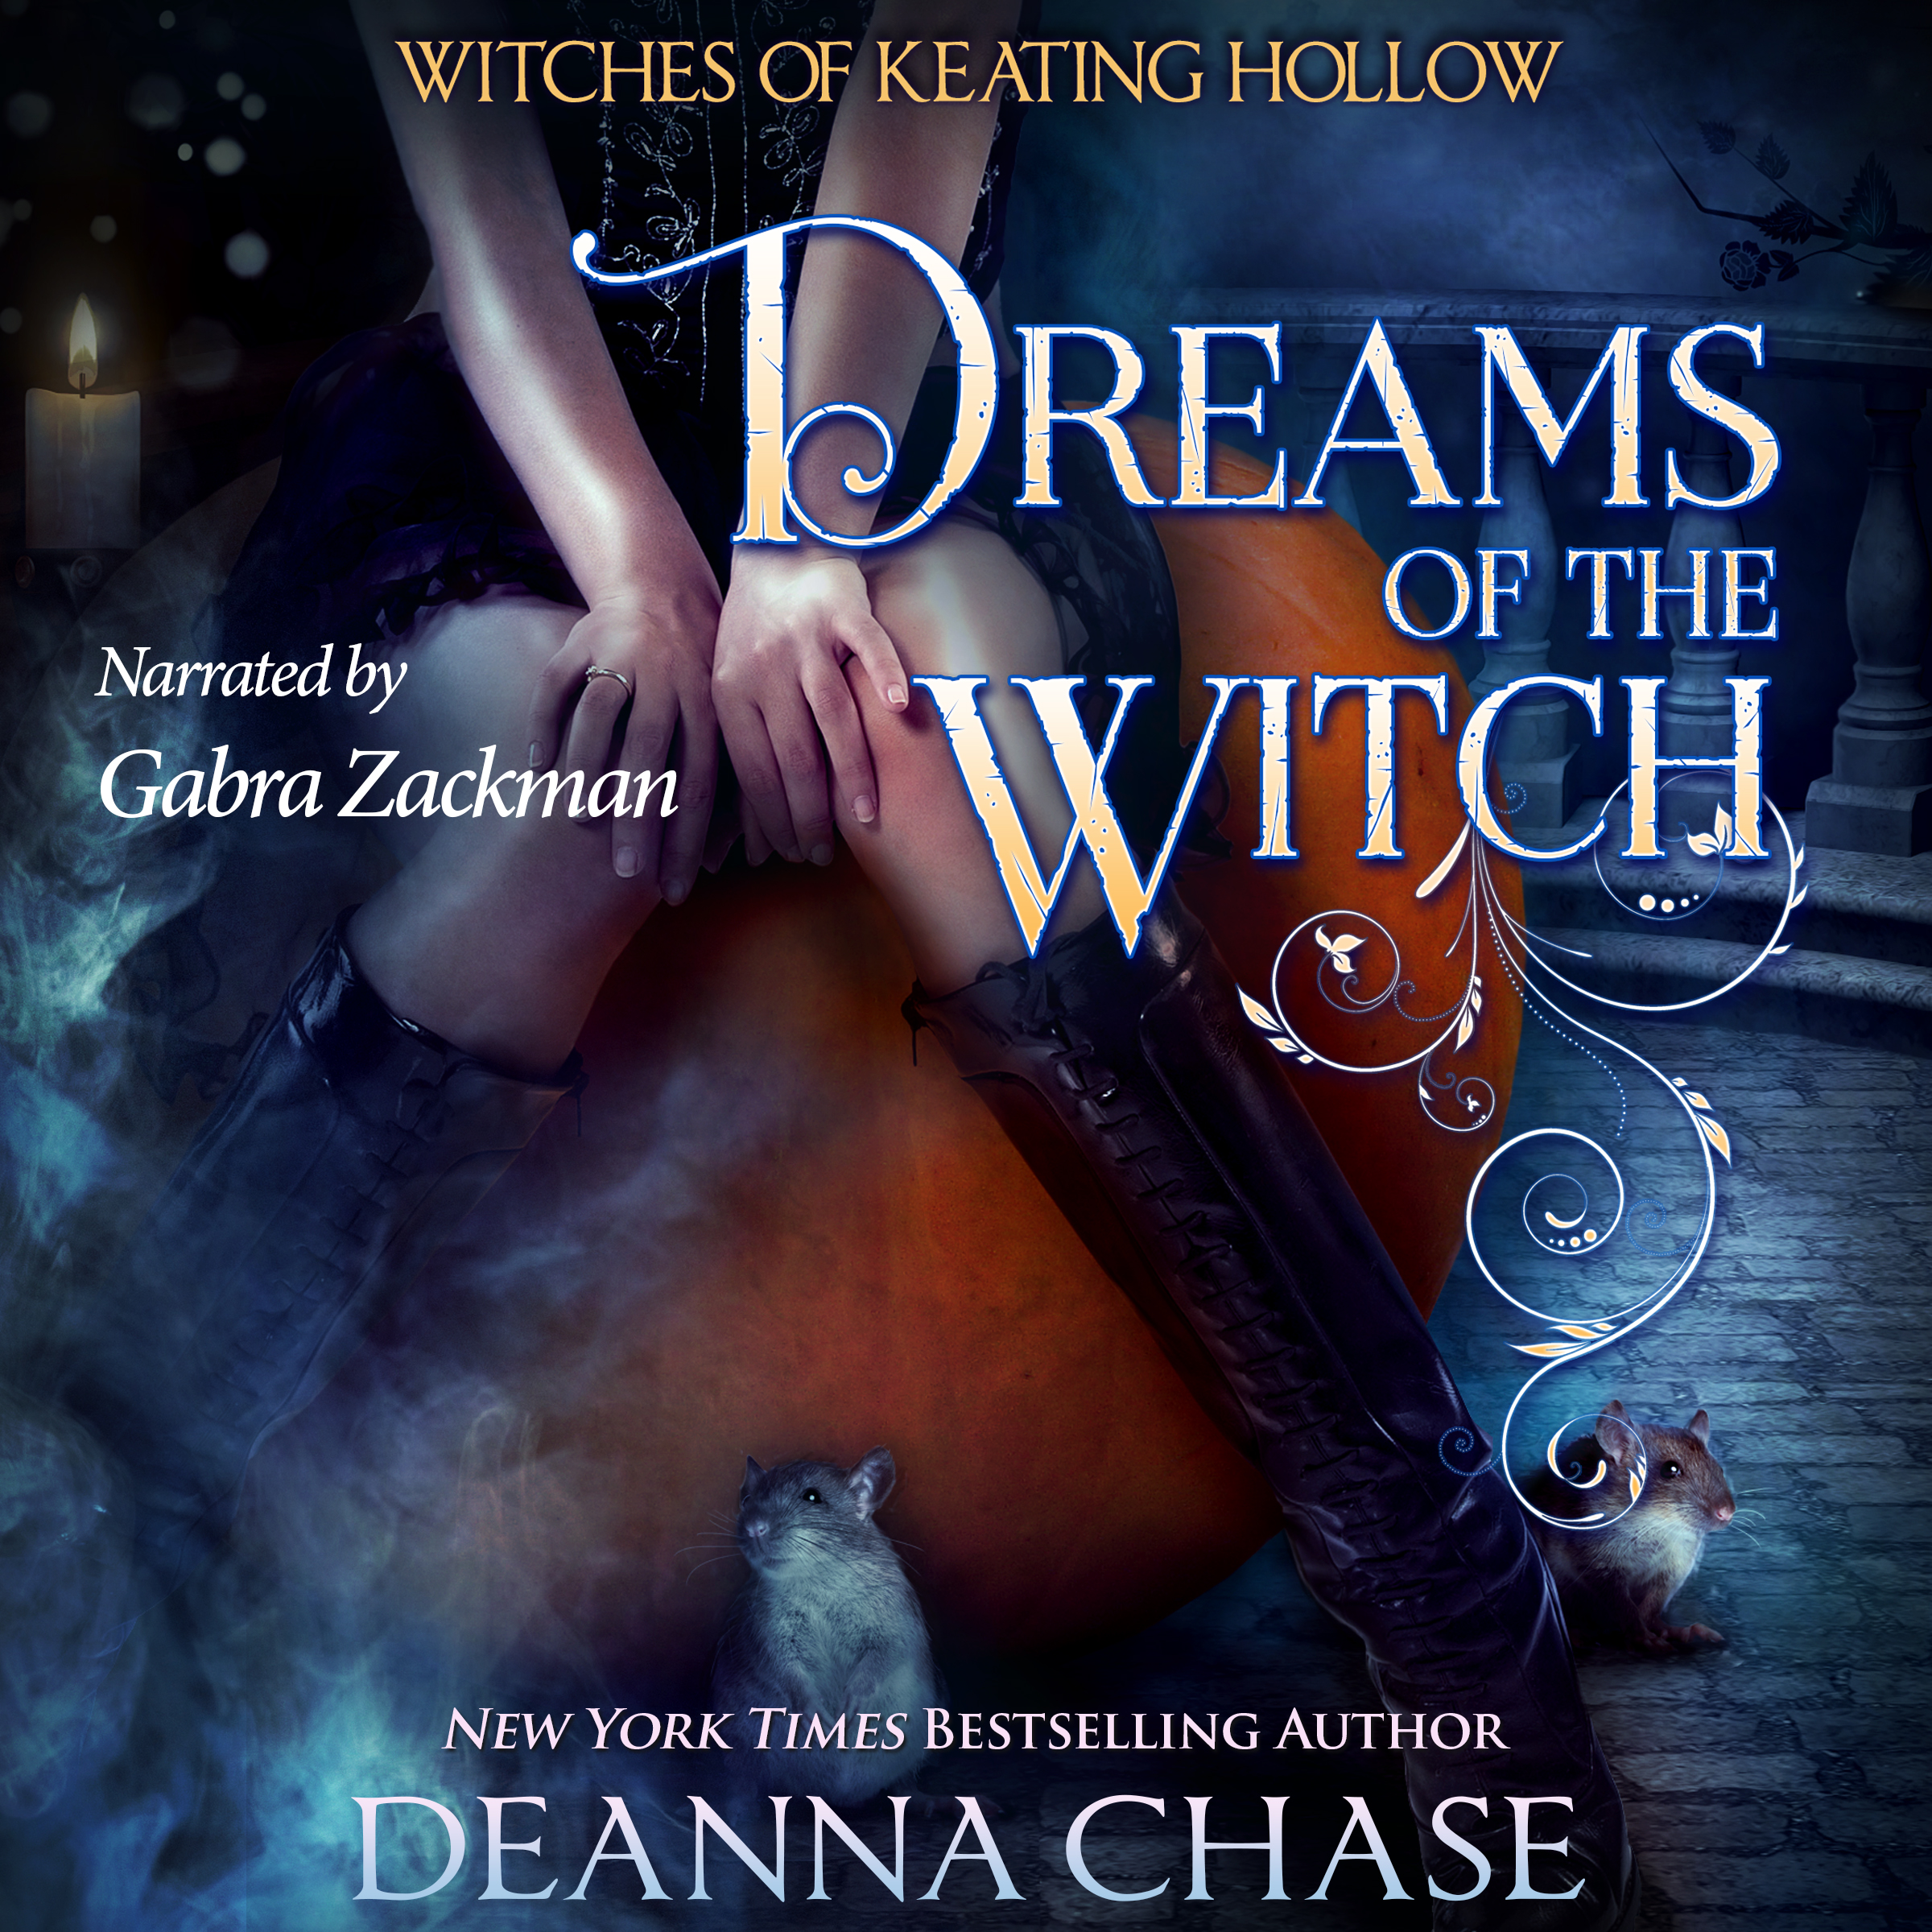 Dreams of the Witch audiobook by Deanna Chase